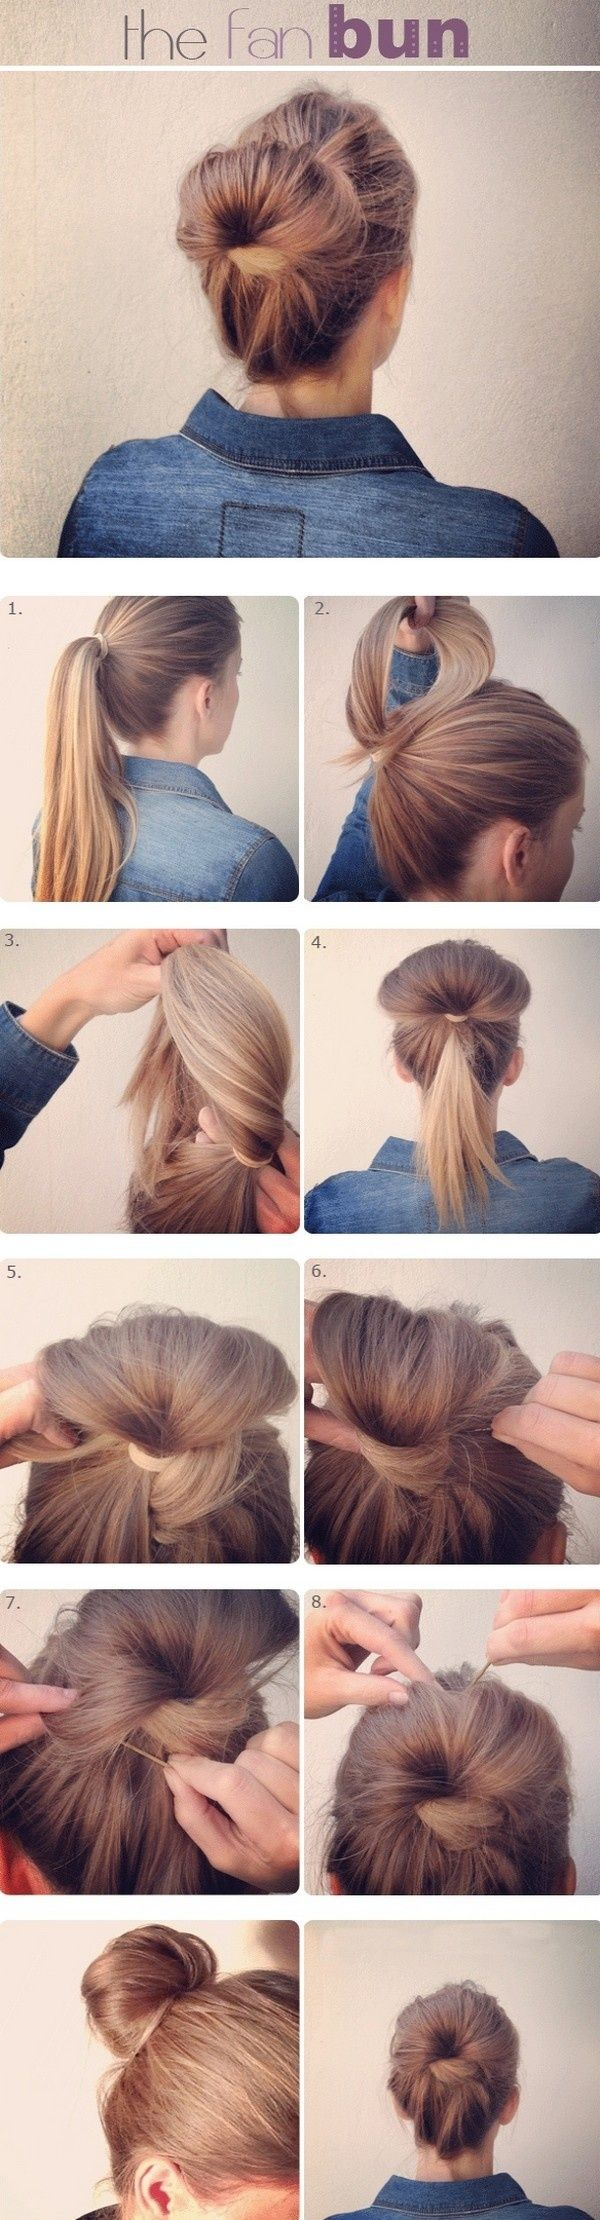 Wondrous 1000 Ideas About Short Hairstyle Tutorial On Pinterest Short Hairstyles Gunalazisus